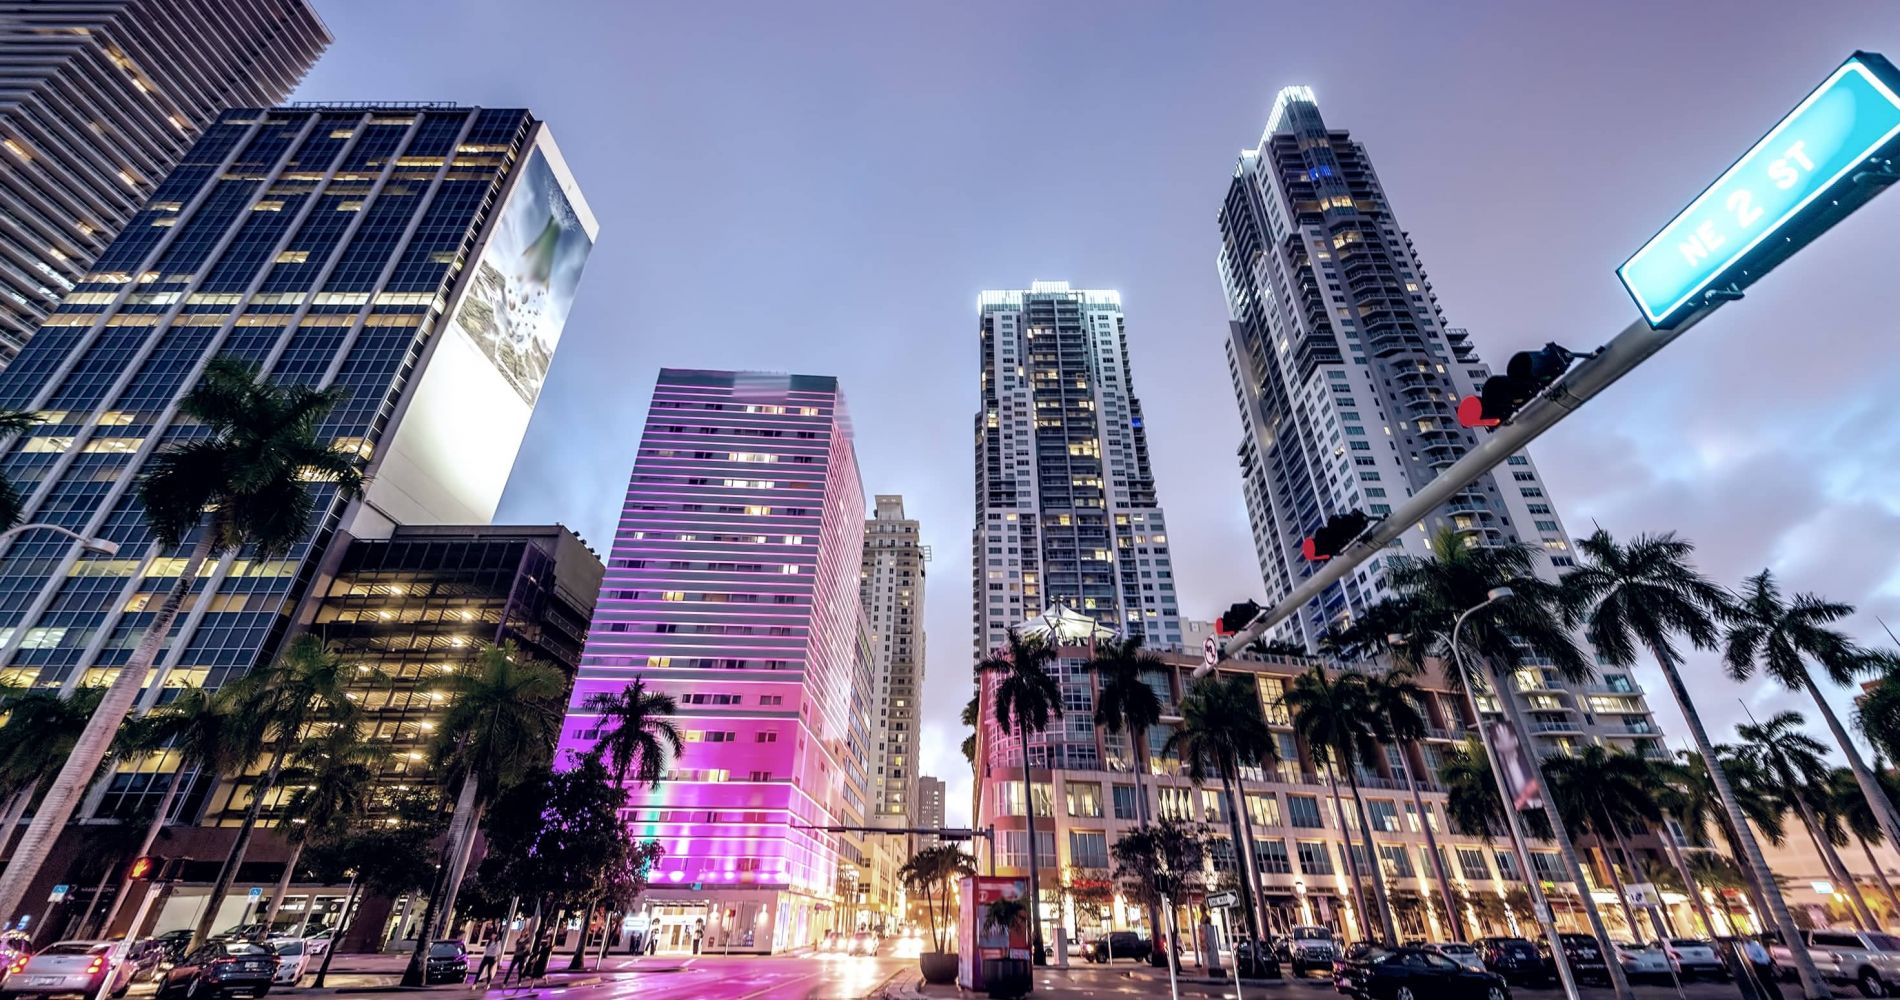 ARTECHOUSE Miami and 3 other attractions